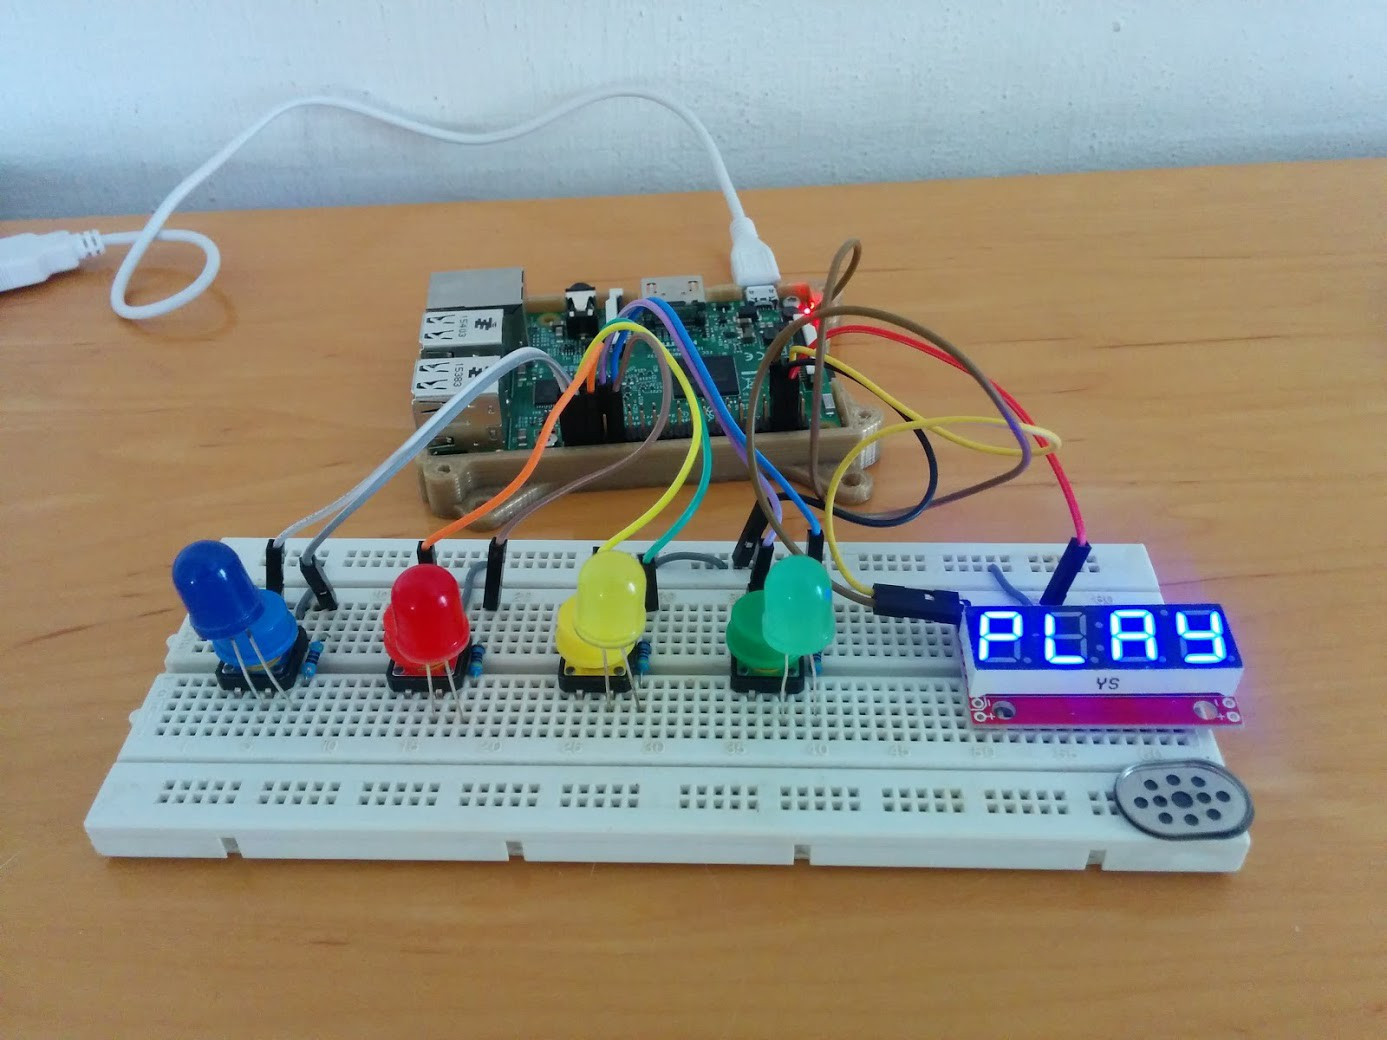 I'm a Software Engineer, why should I care about Arduino?